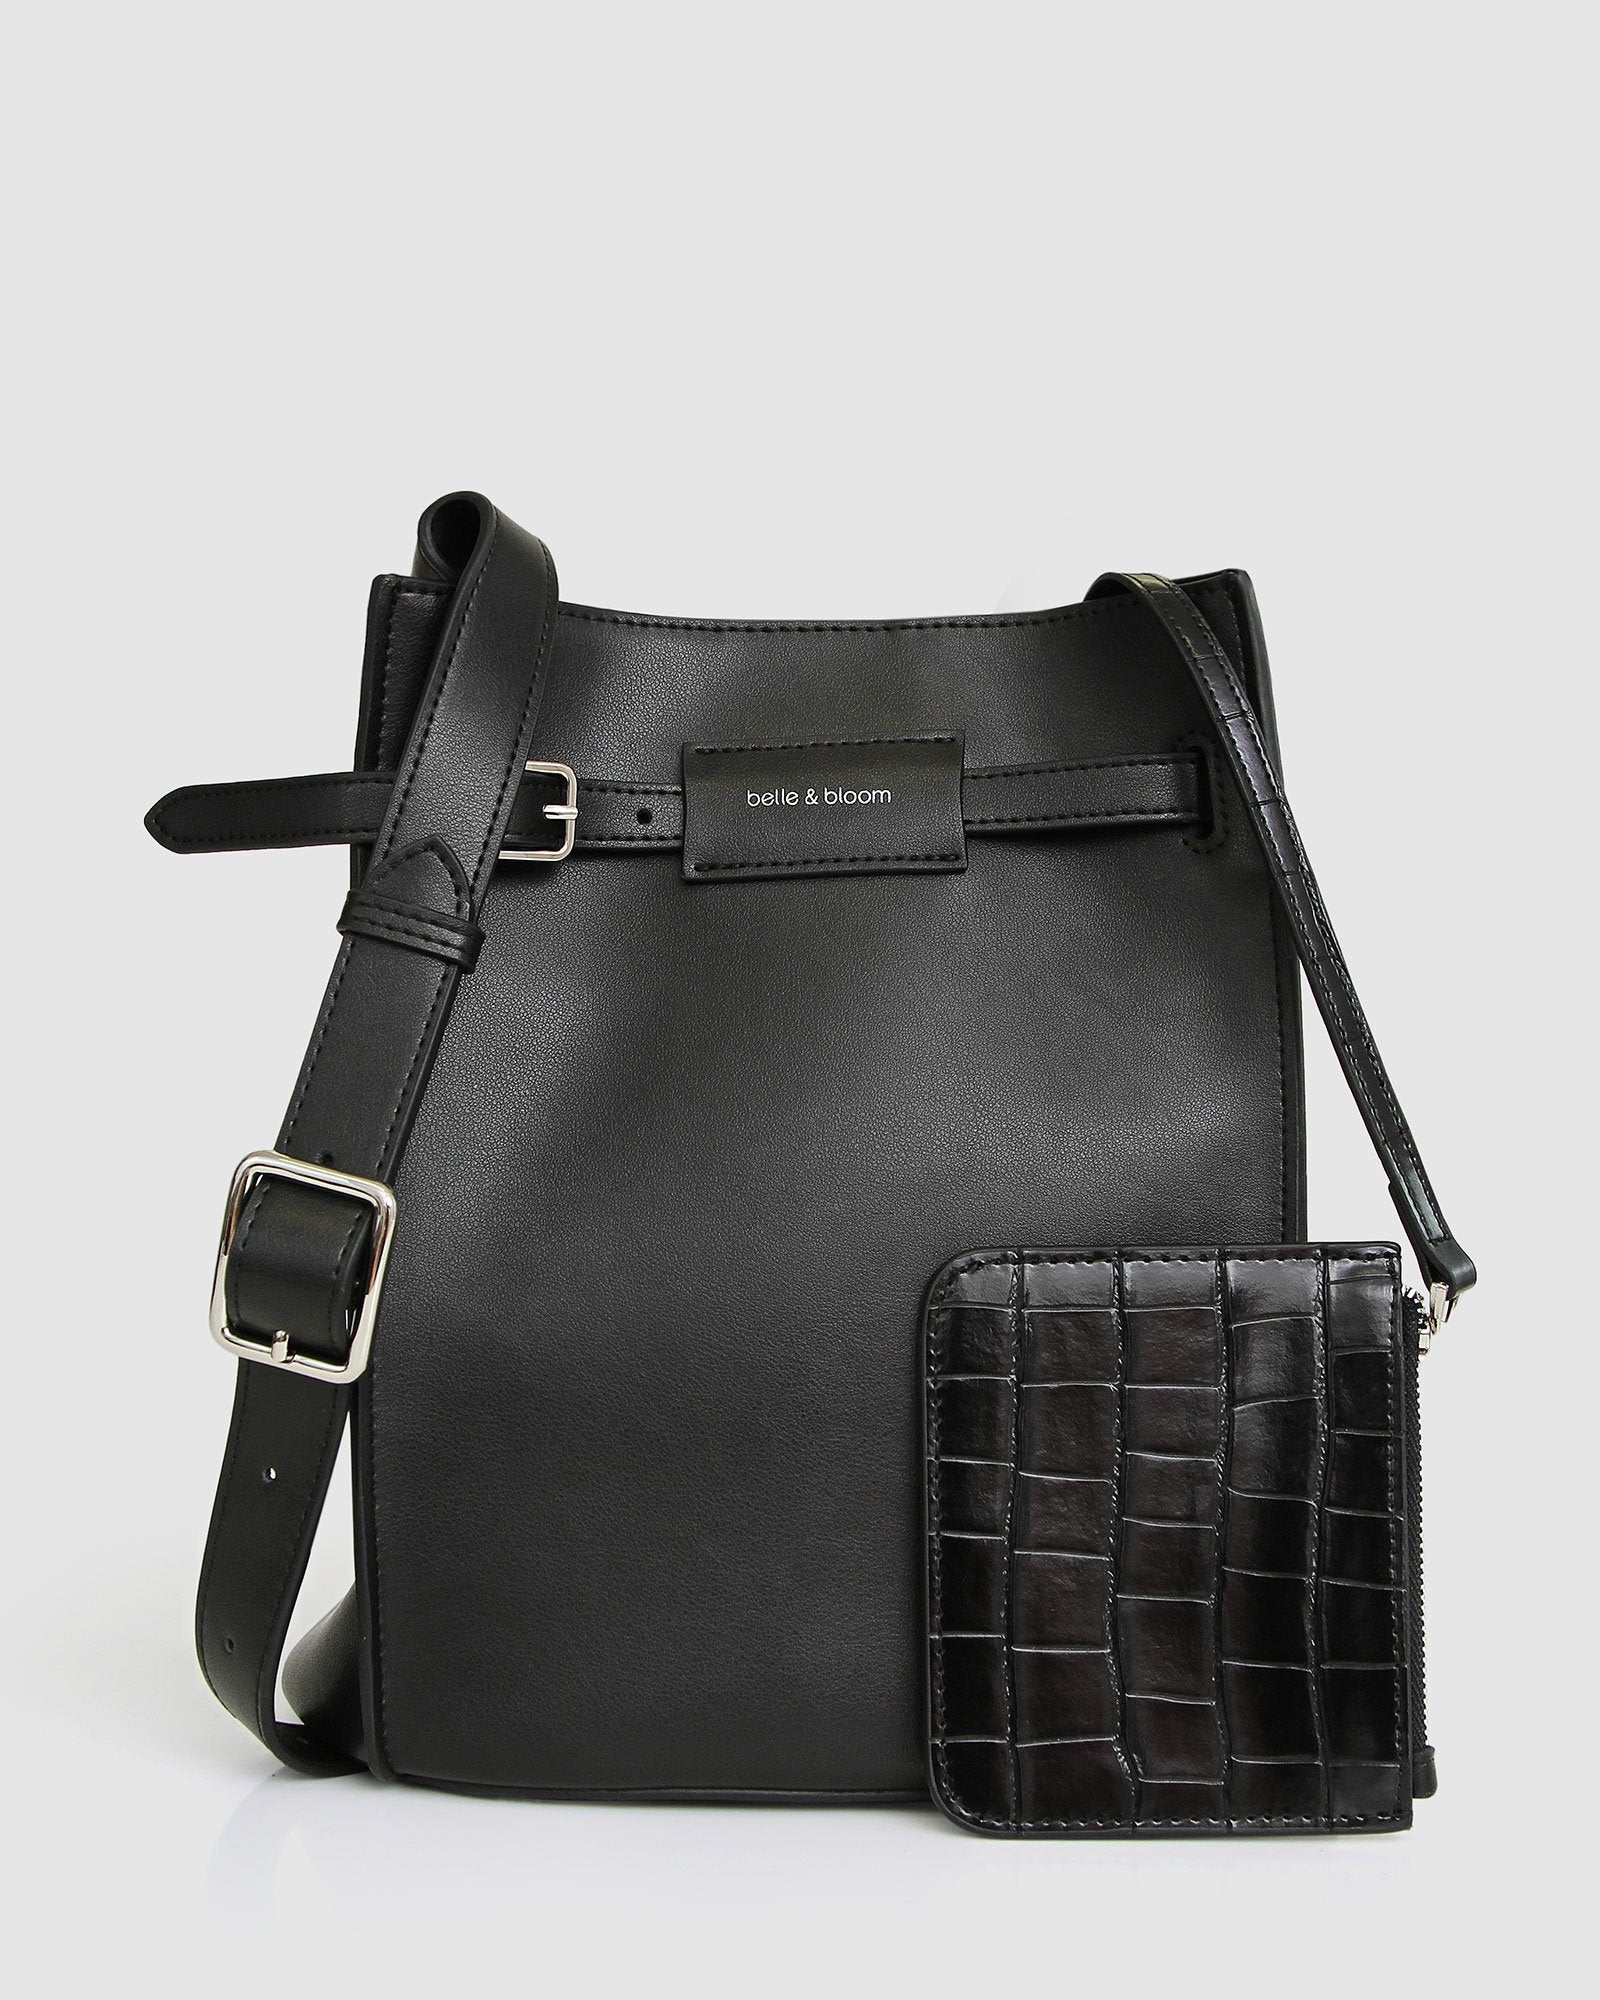 She's The One Leather Bucket Bag - Black